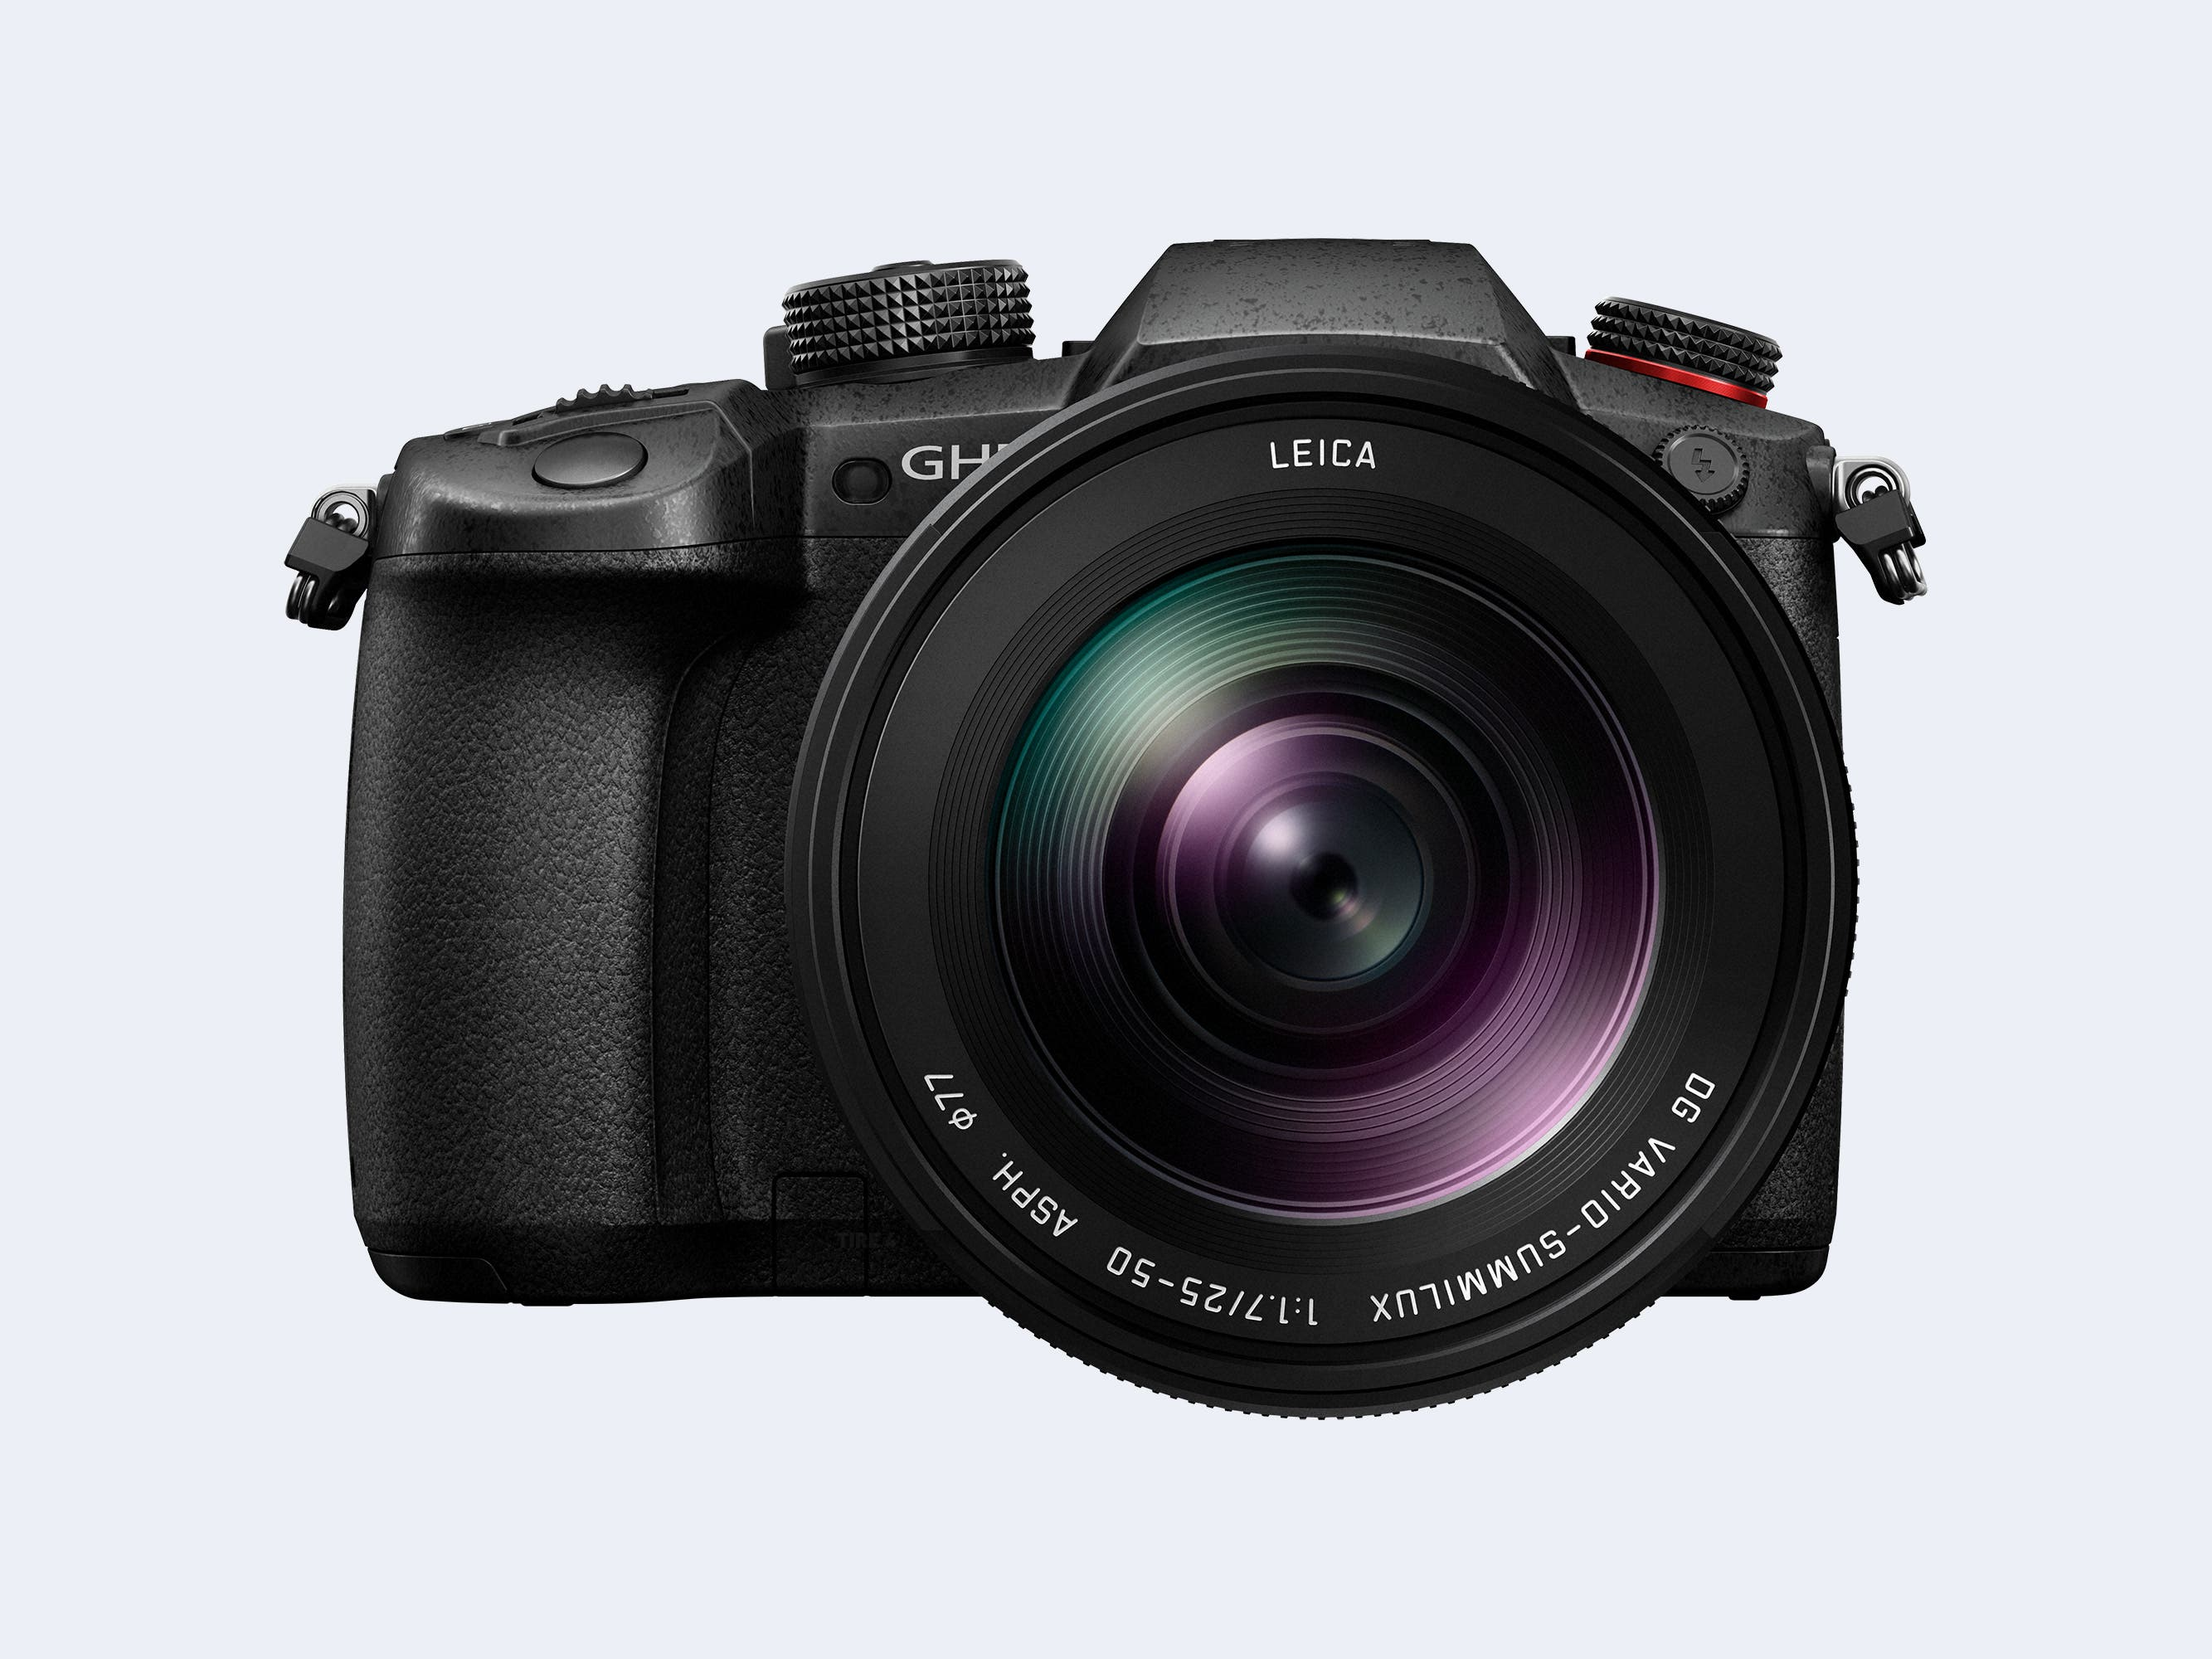 The Panasonic 25-50mm F1.7 Raises Important Questions about Micro 43